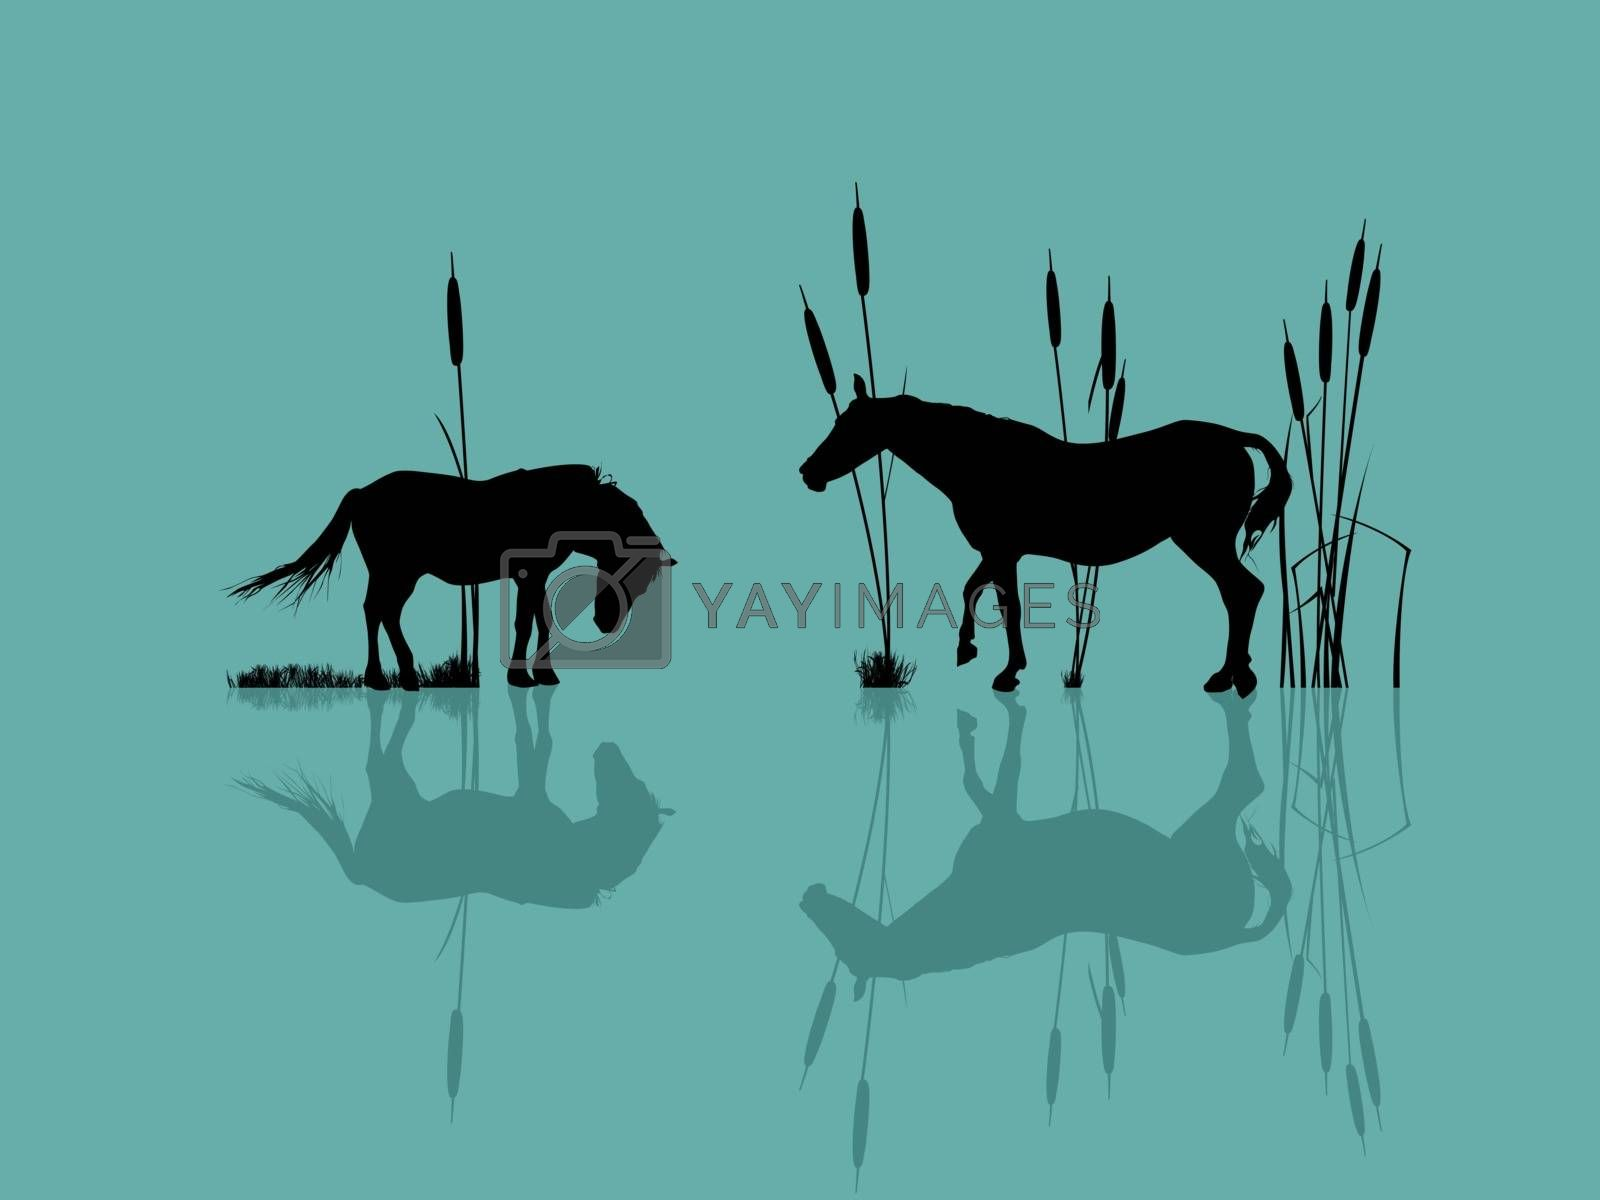 Background romantic illustration with horses at the water